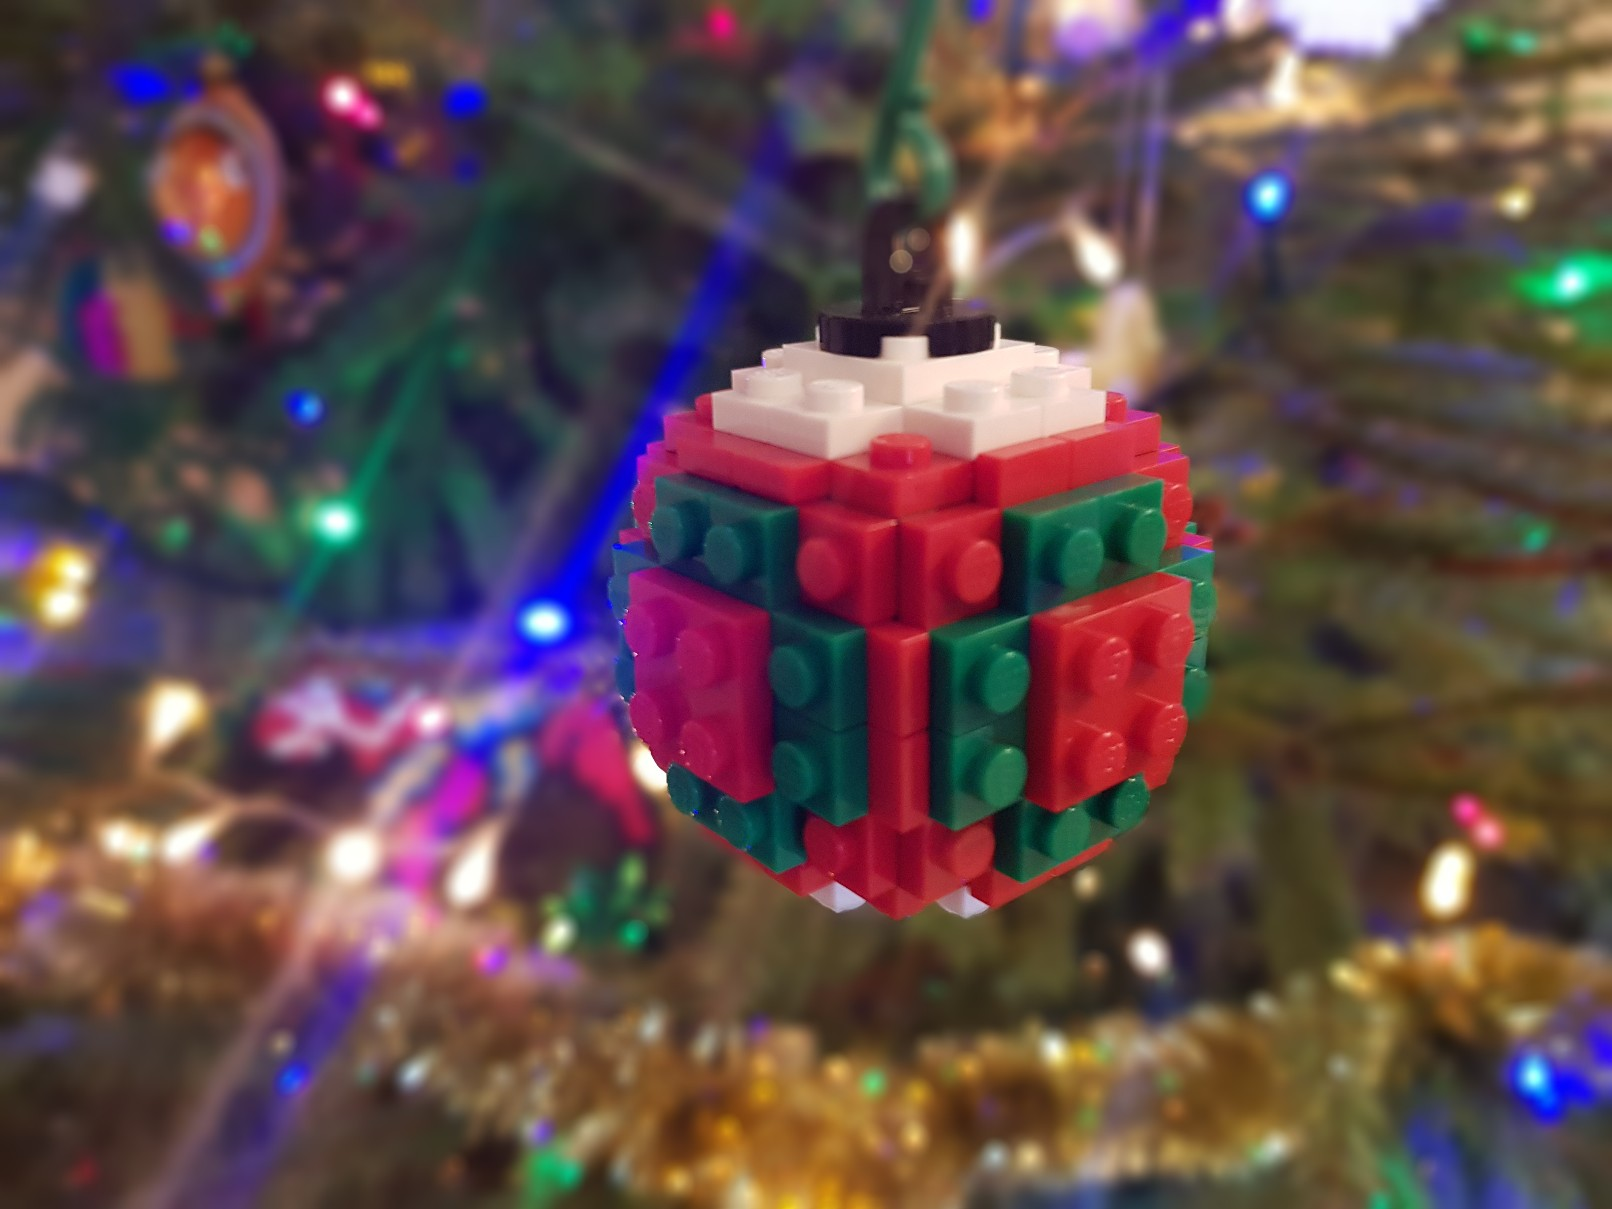 lego moc christmas baubles ornament ball red green